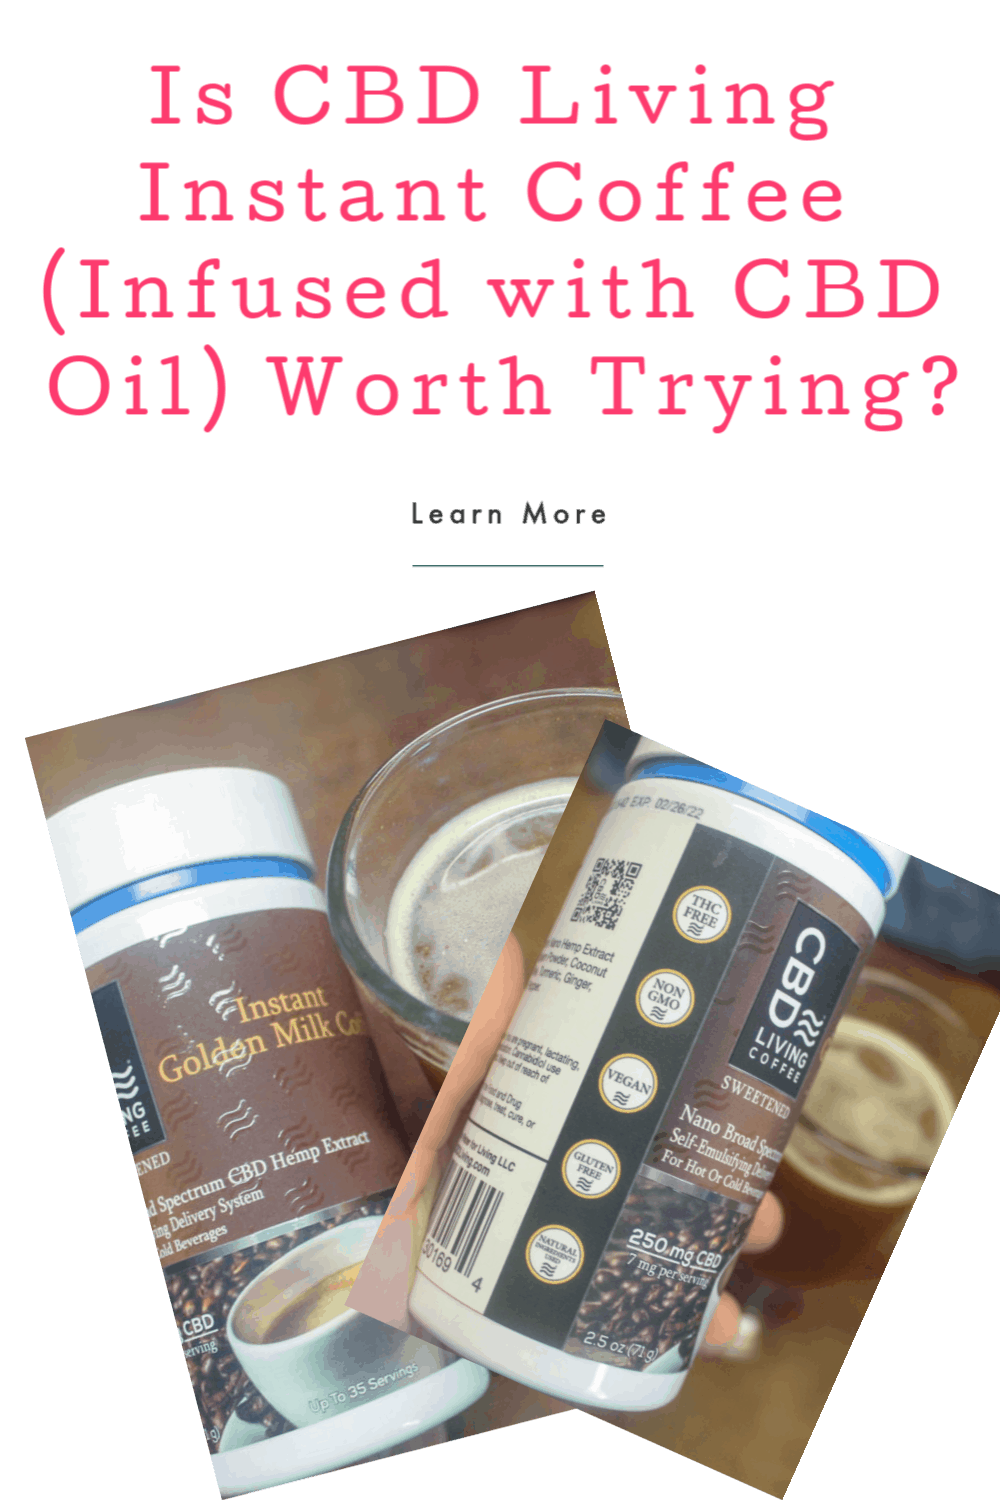 Considering giving CBD Living Instant Coffee (coffee infused with CBD oil) a try, but not really sure if it's worth it? Read on for my complete review to find out! (Spoiler alert- I think it is).